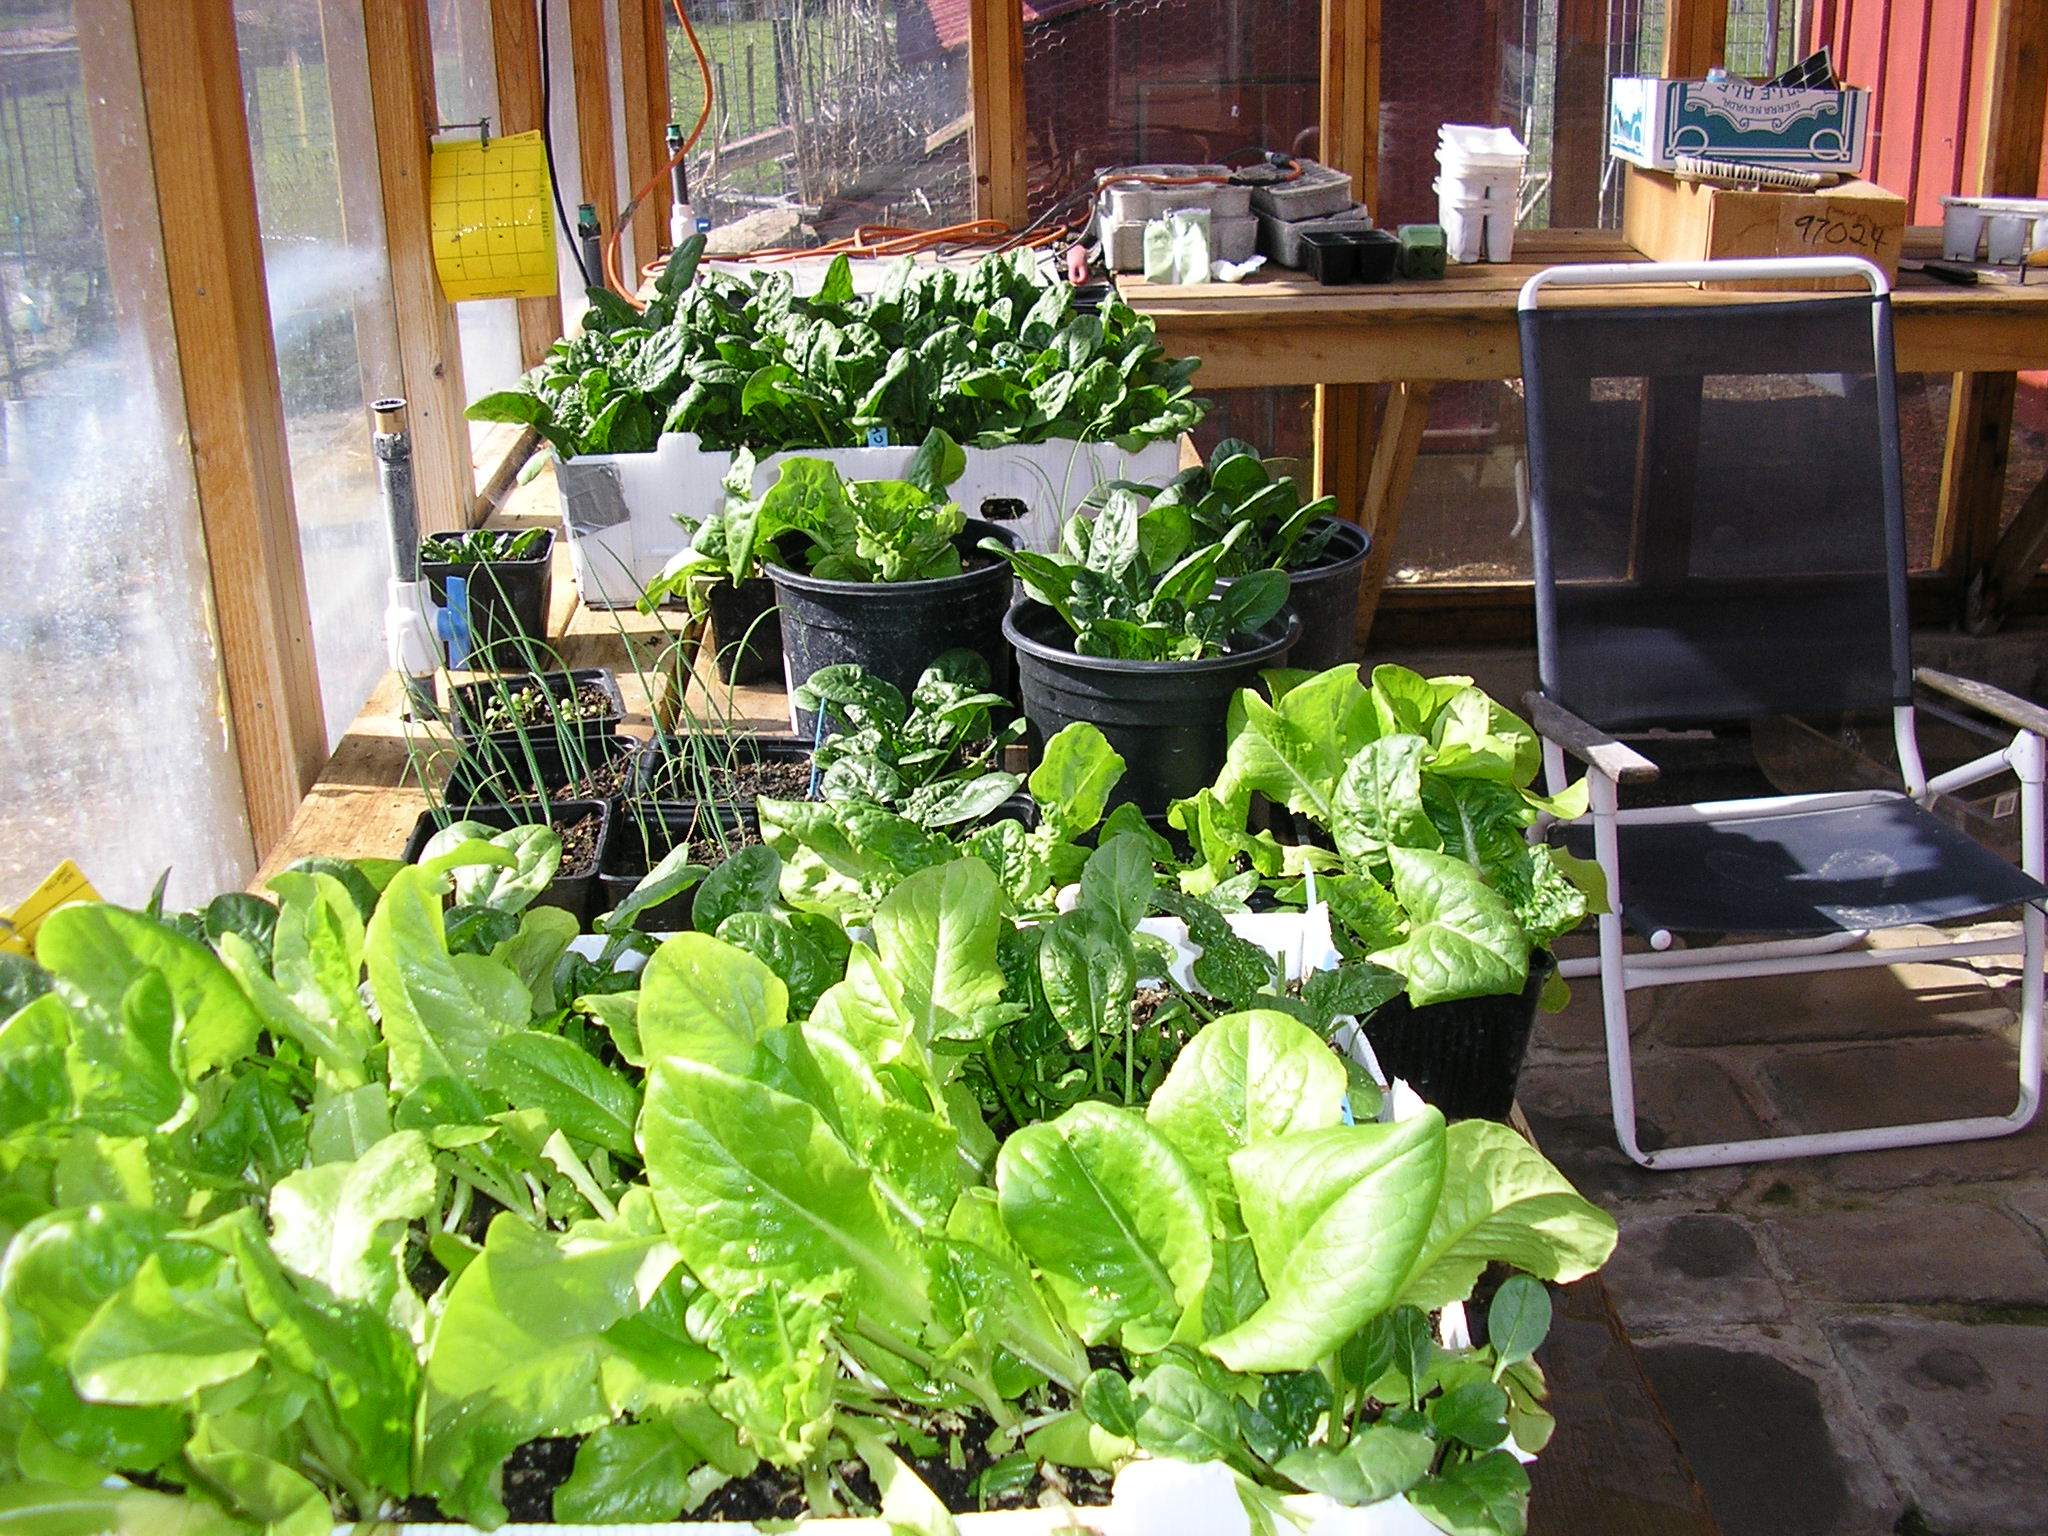 Here's some lettuce and spinach along with various seedings in the greenhouse.